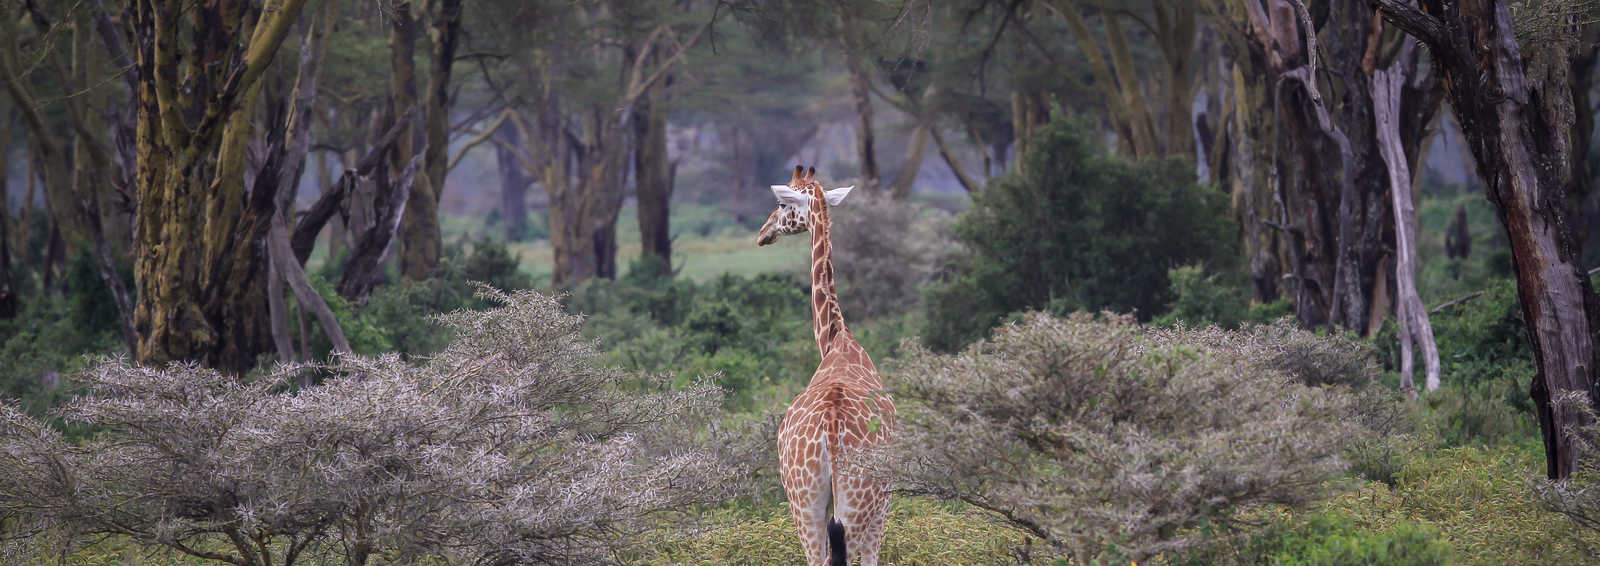 Rothschilds Giraffe in Lake Nakuru, Kenya